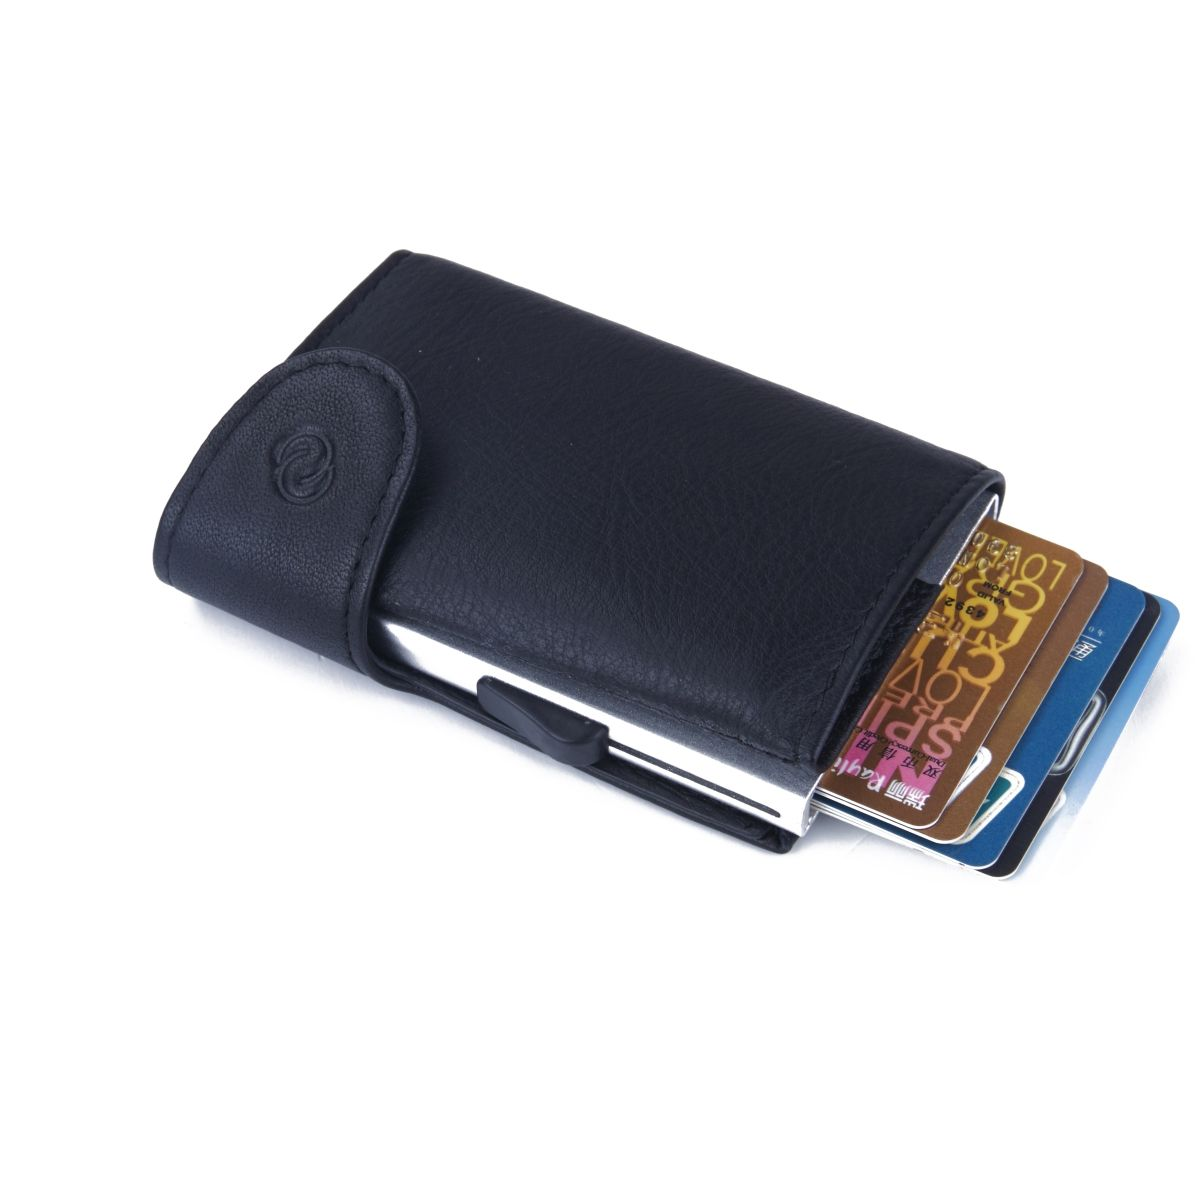 Aluminum Card Holder with Genuine Leather - Black